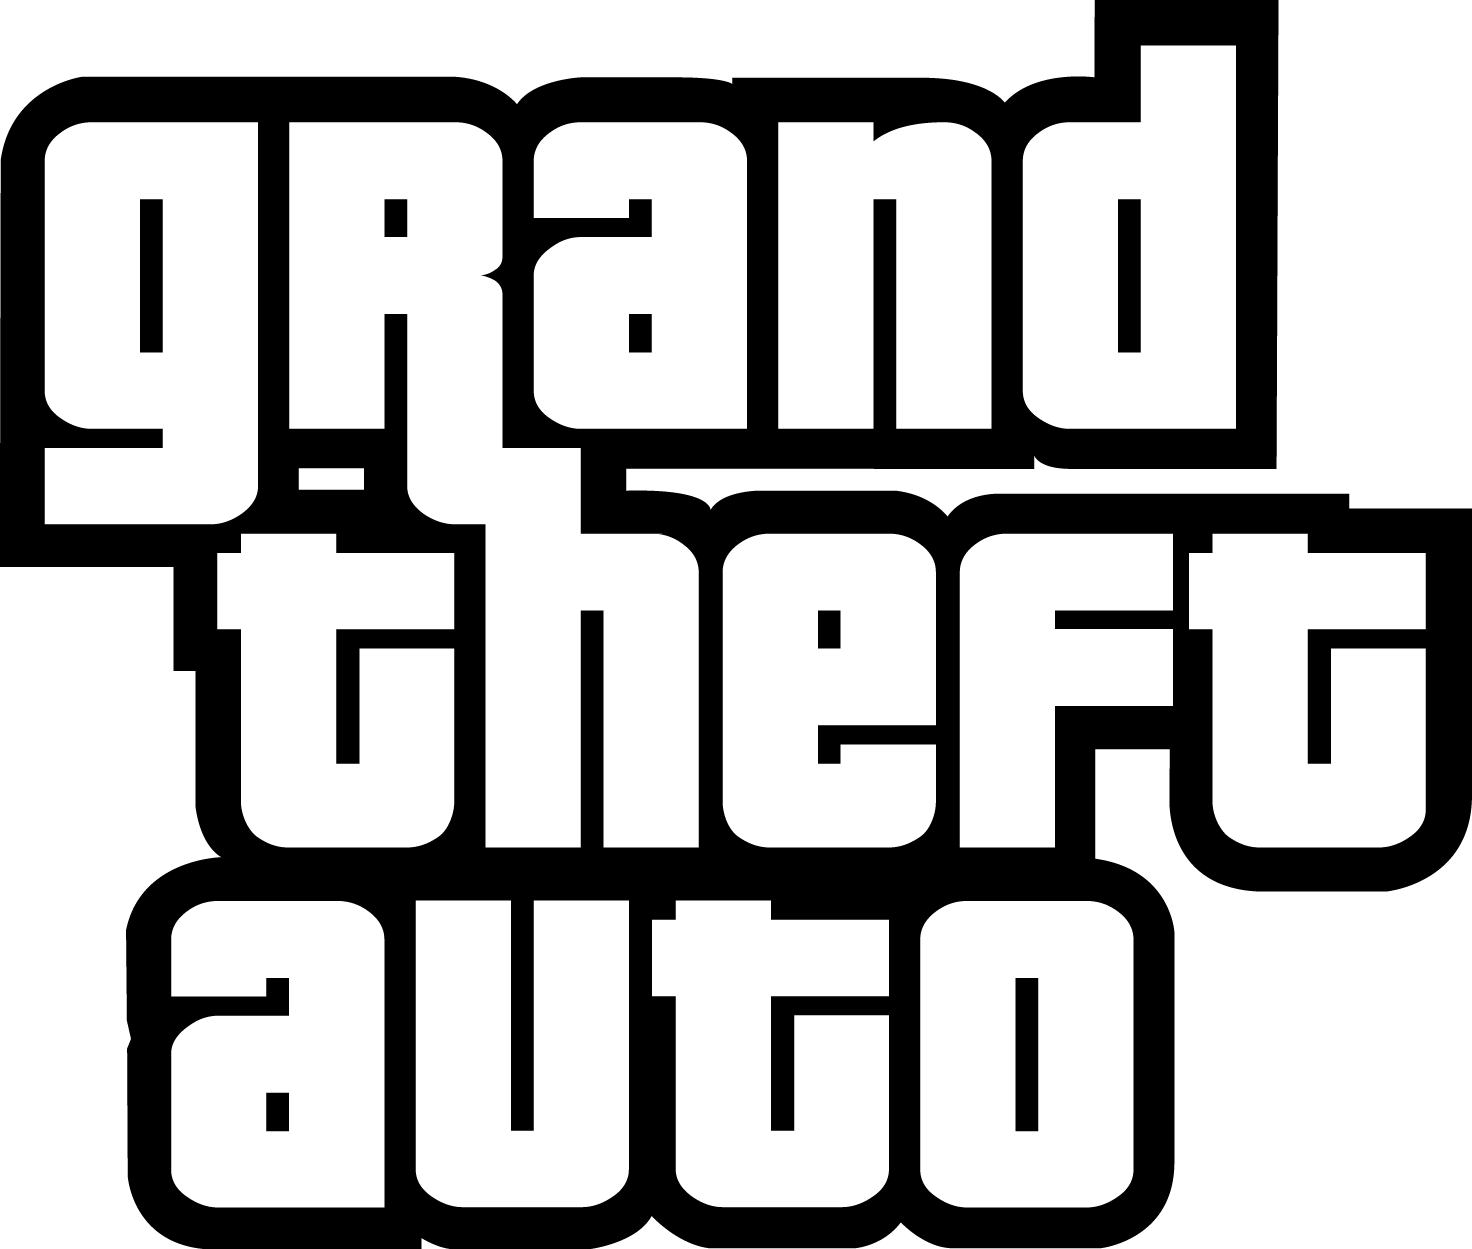 Gta wasted png. Logo grand theft auto